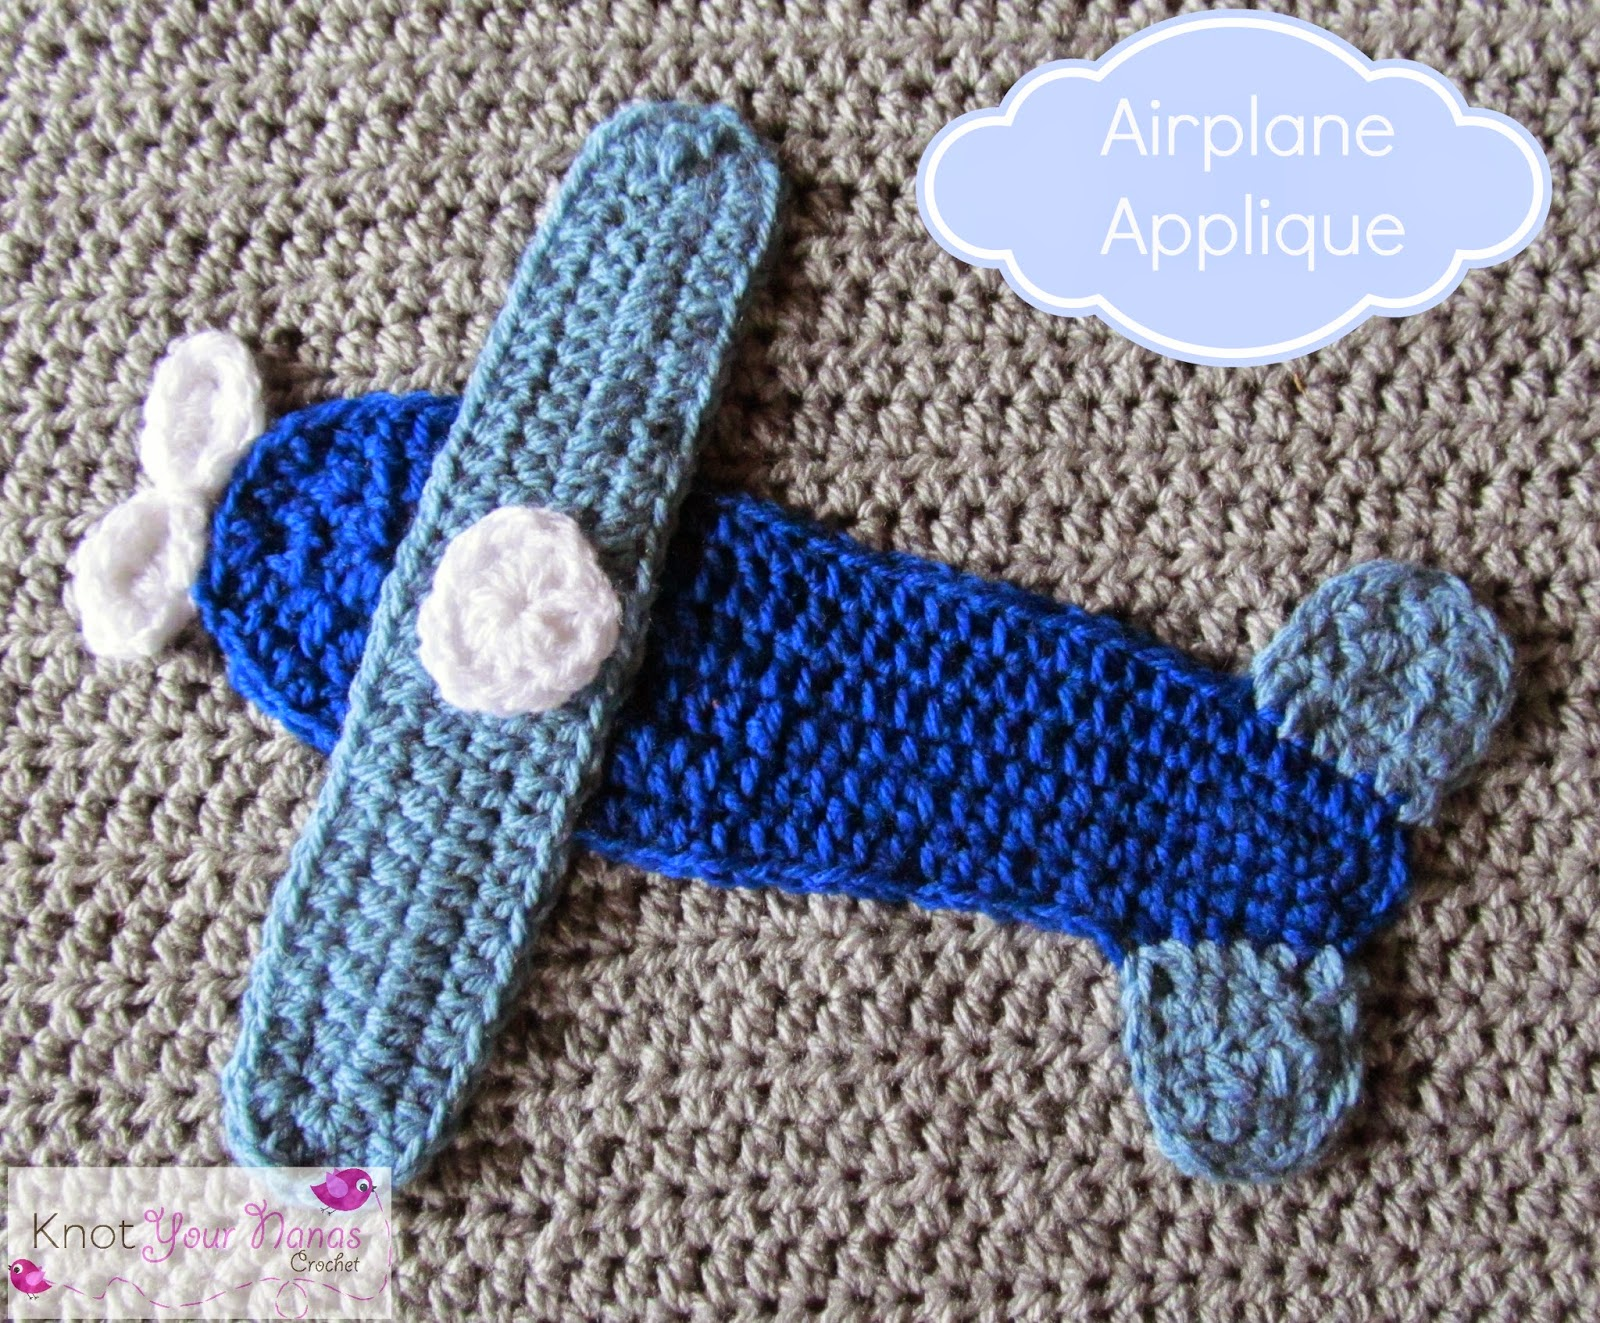 Crochet-Airplane-Applique